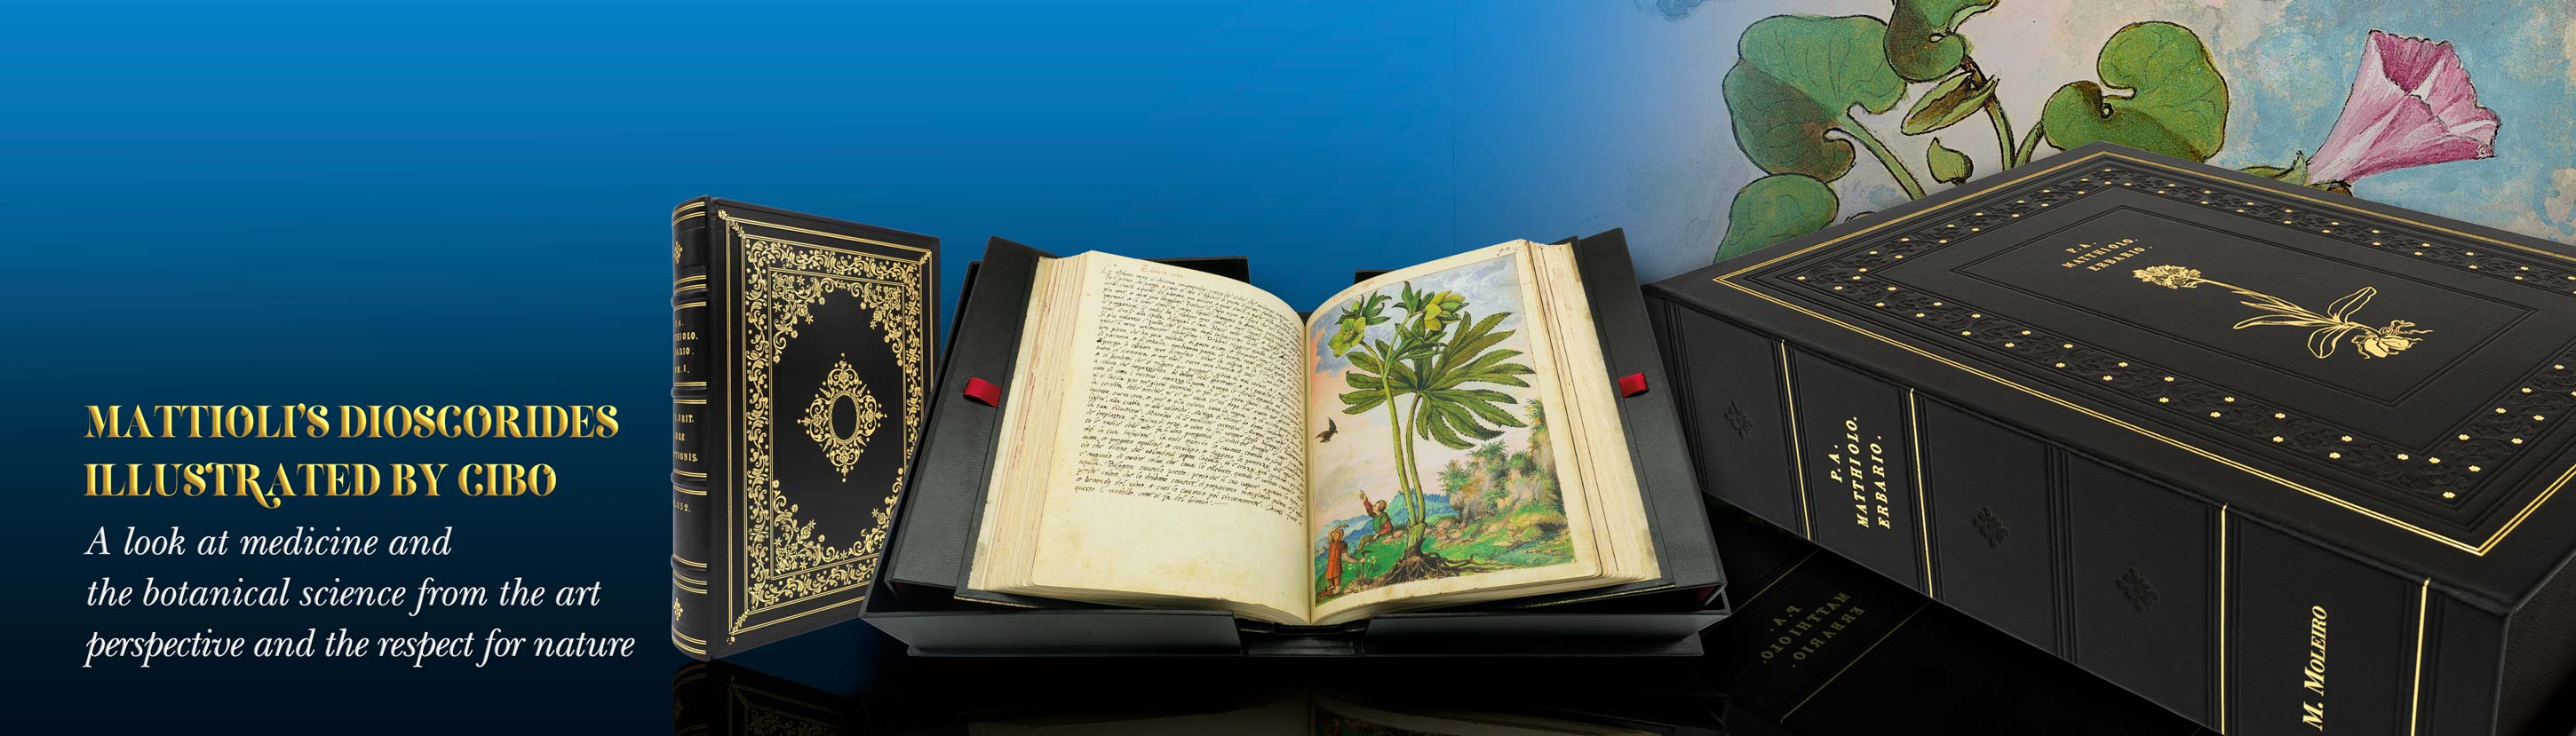 Mattioli´s Dioscorides illustrated by Cibo. A look at medicine and the botanical science from the art perspective and the respect for nature.